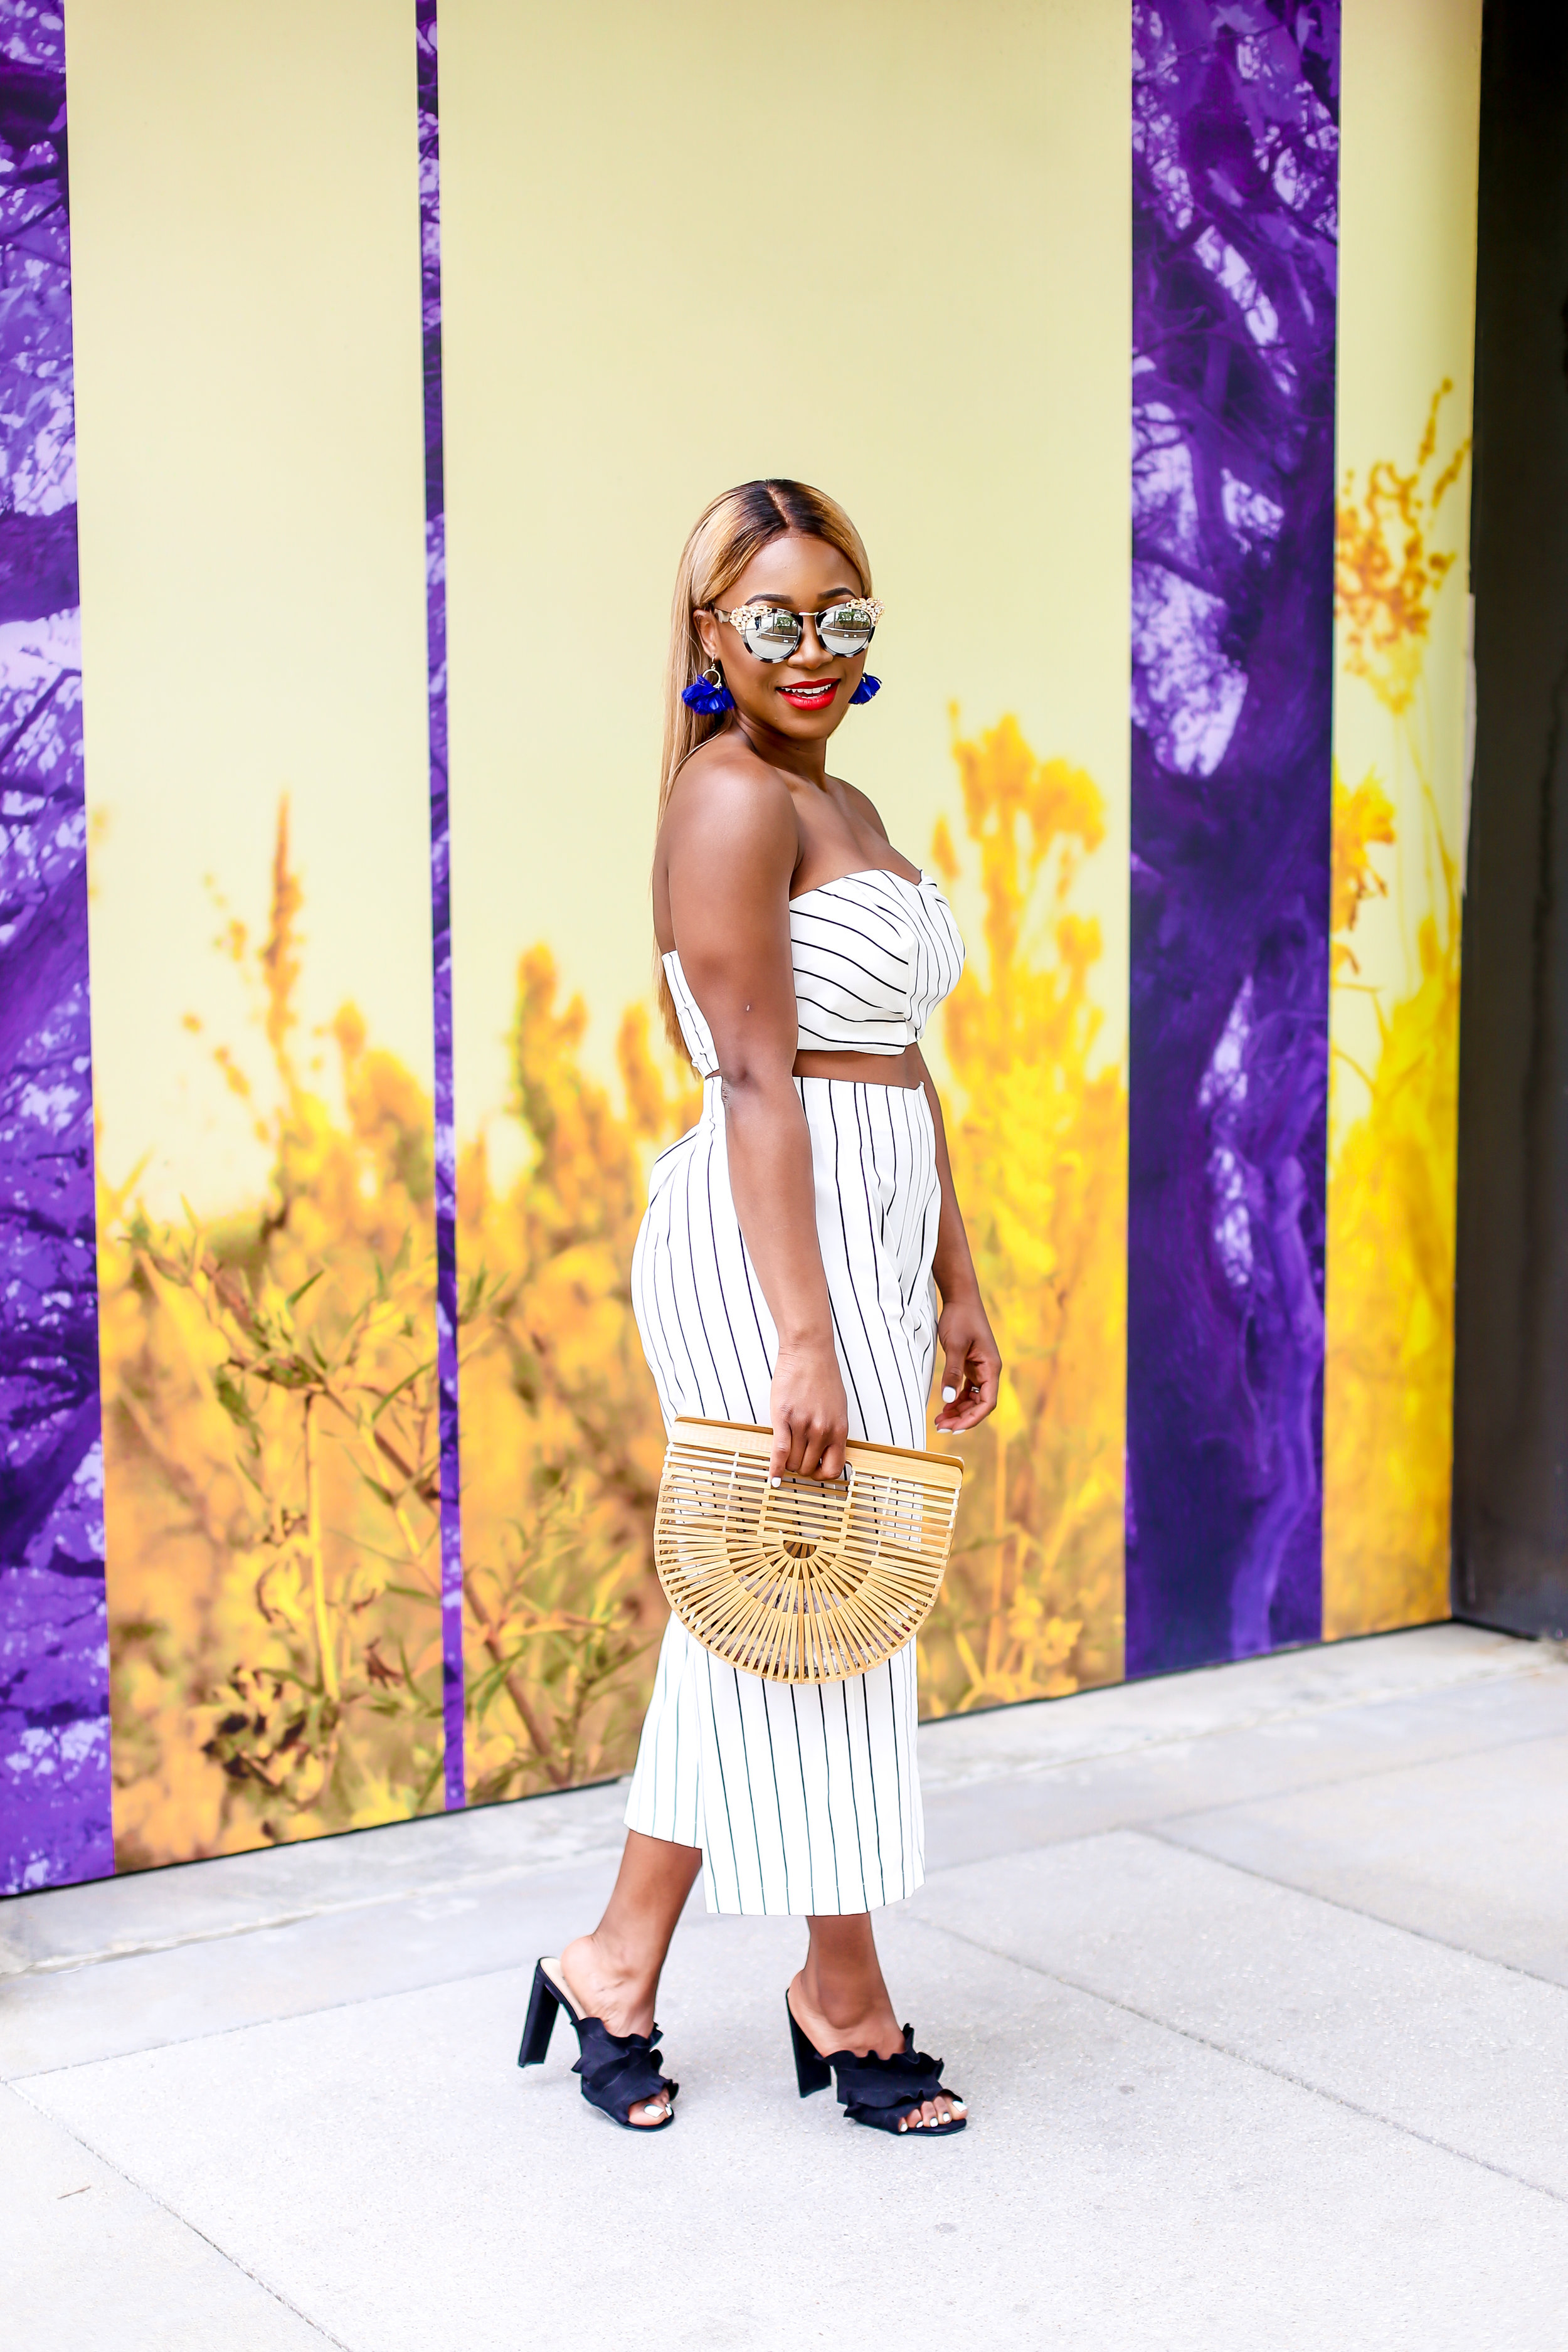 Sunglasses and Handbags can always bring your outfit to life.